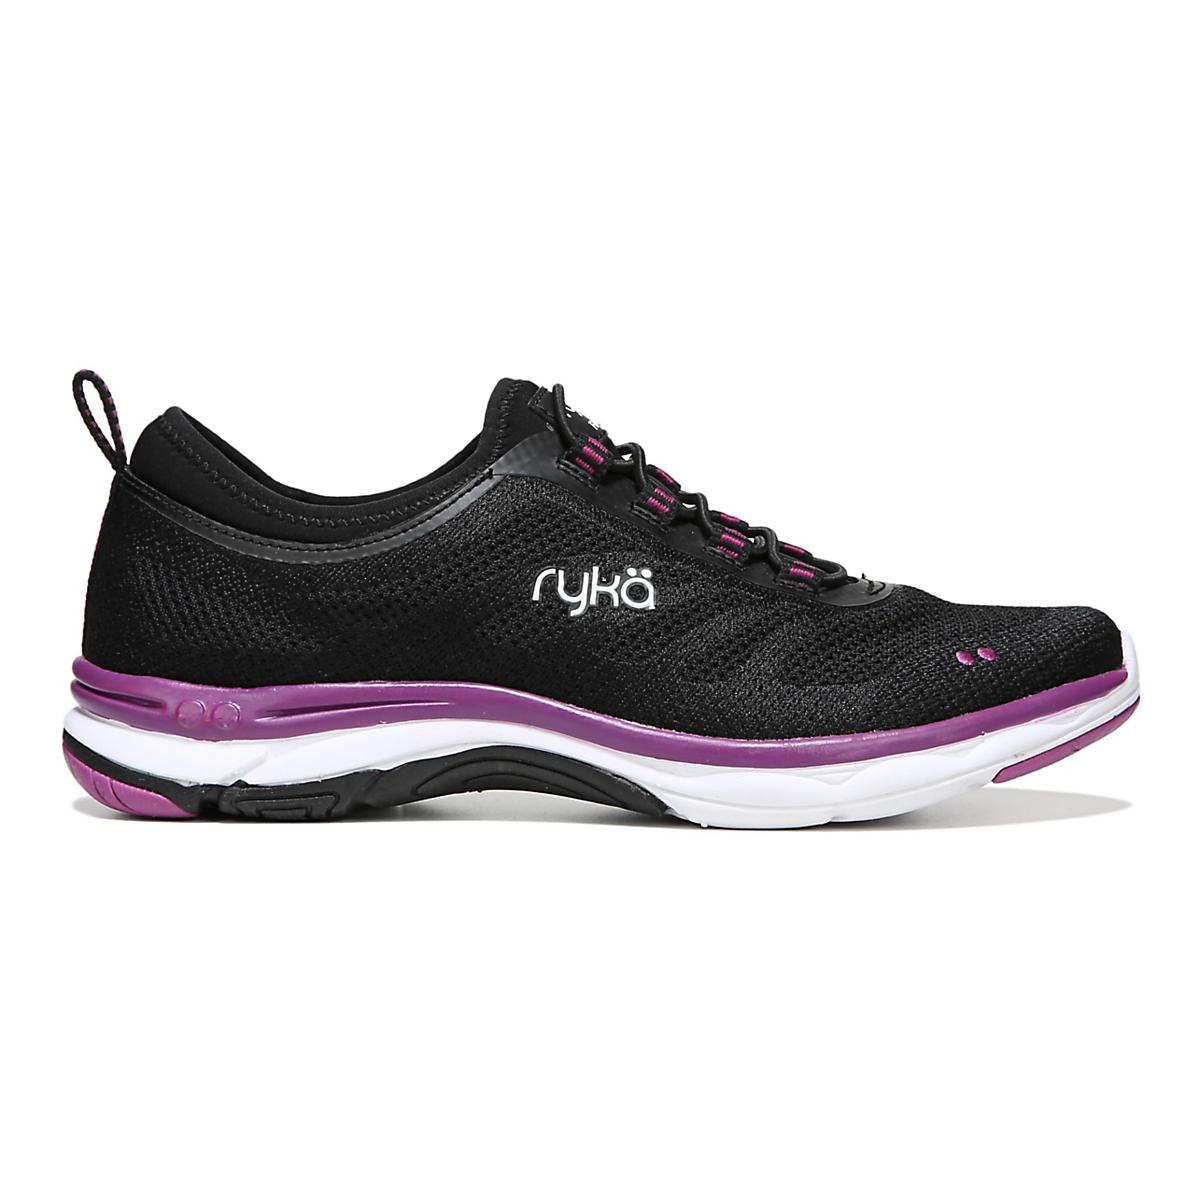 Ryka Womens Sky Bolt Walking Shoe Fabric Low Top Lace Up Walking Shoes. Sold by PairMySole. $ $ Ryka Womens Comfort Casual Walking Shoes. Sold by BHFO. $ $ Ryka Women's Infinite SMW Walking Shoe, Black/Blue, M US. Sold by ErgodE. $ $